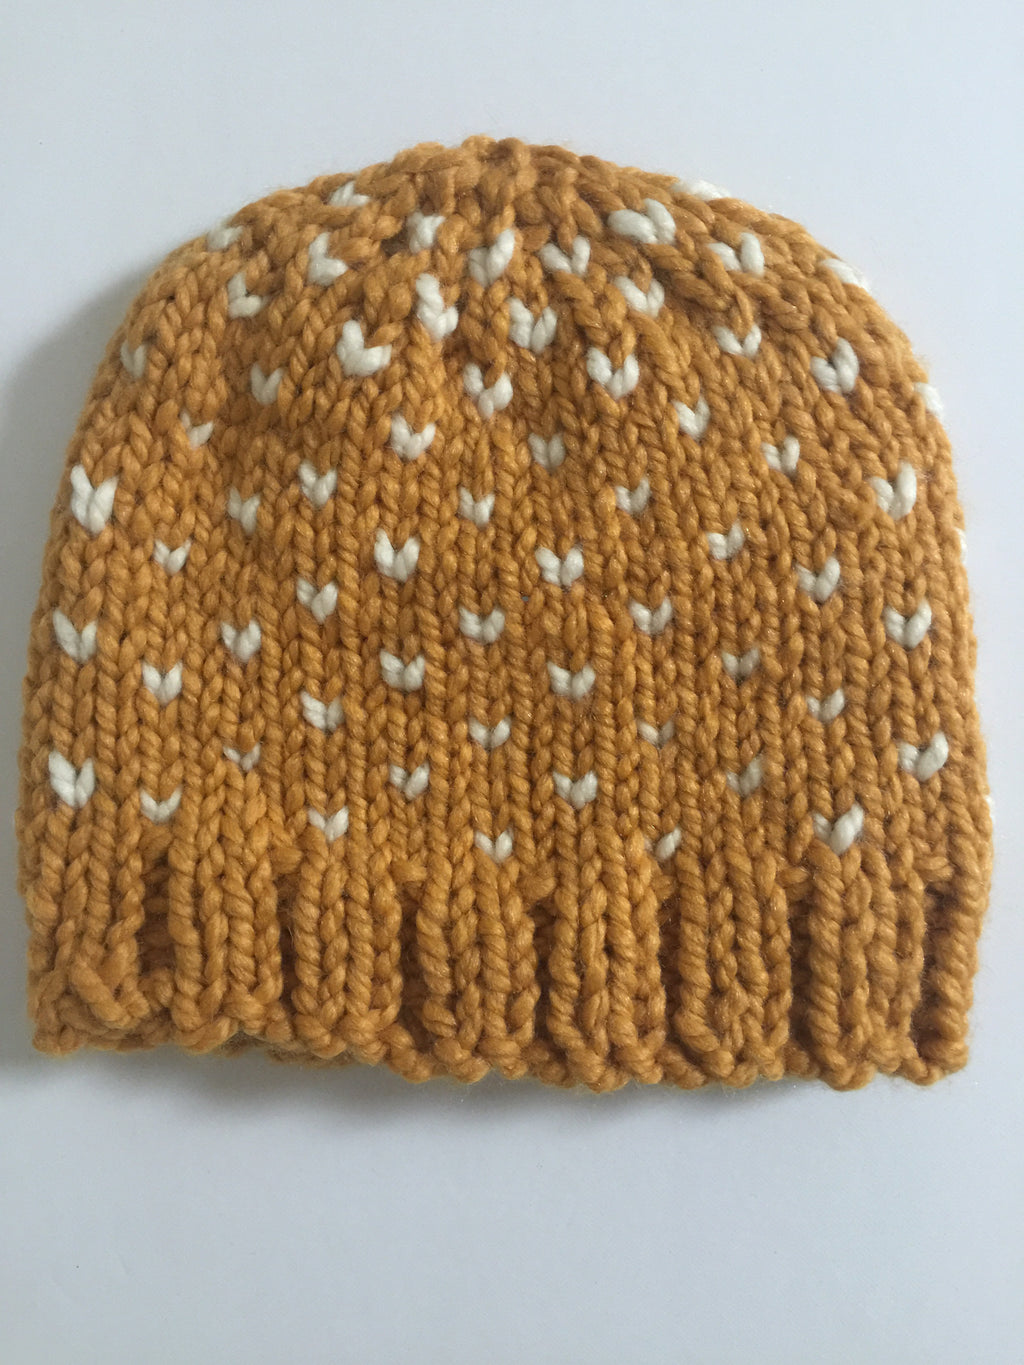 Handknit Beanie Mustard and White